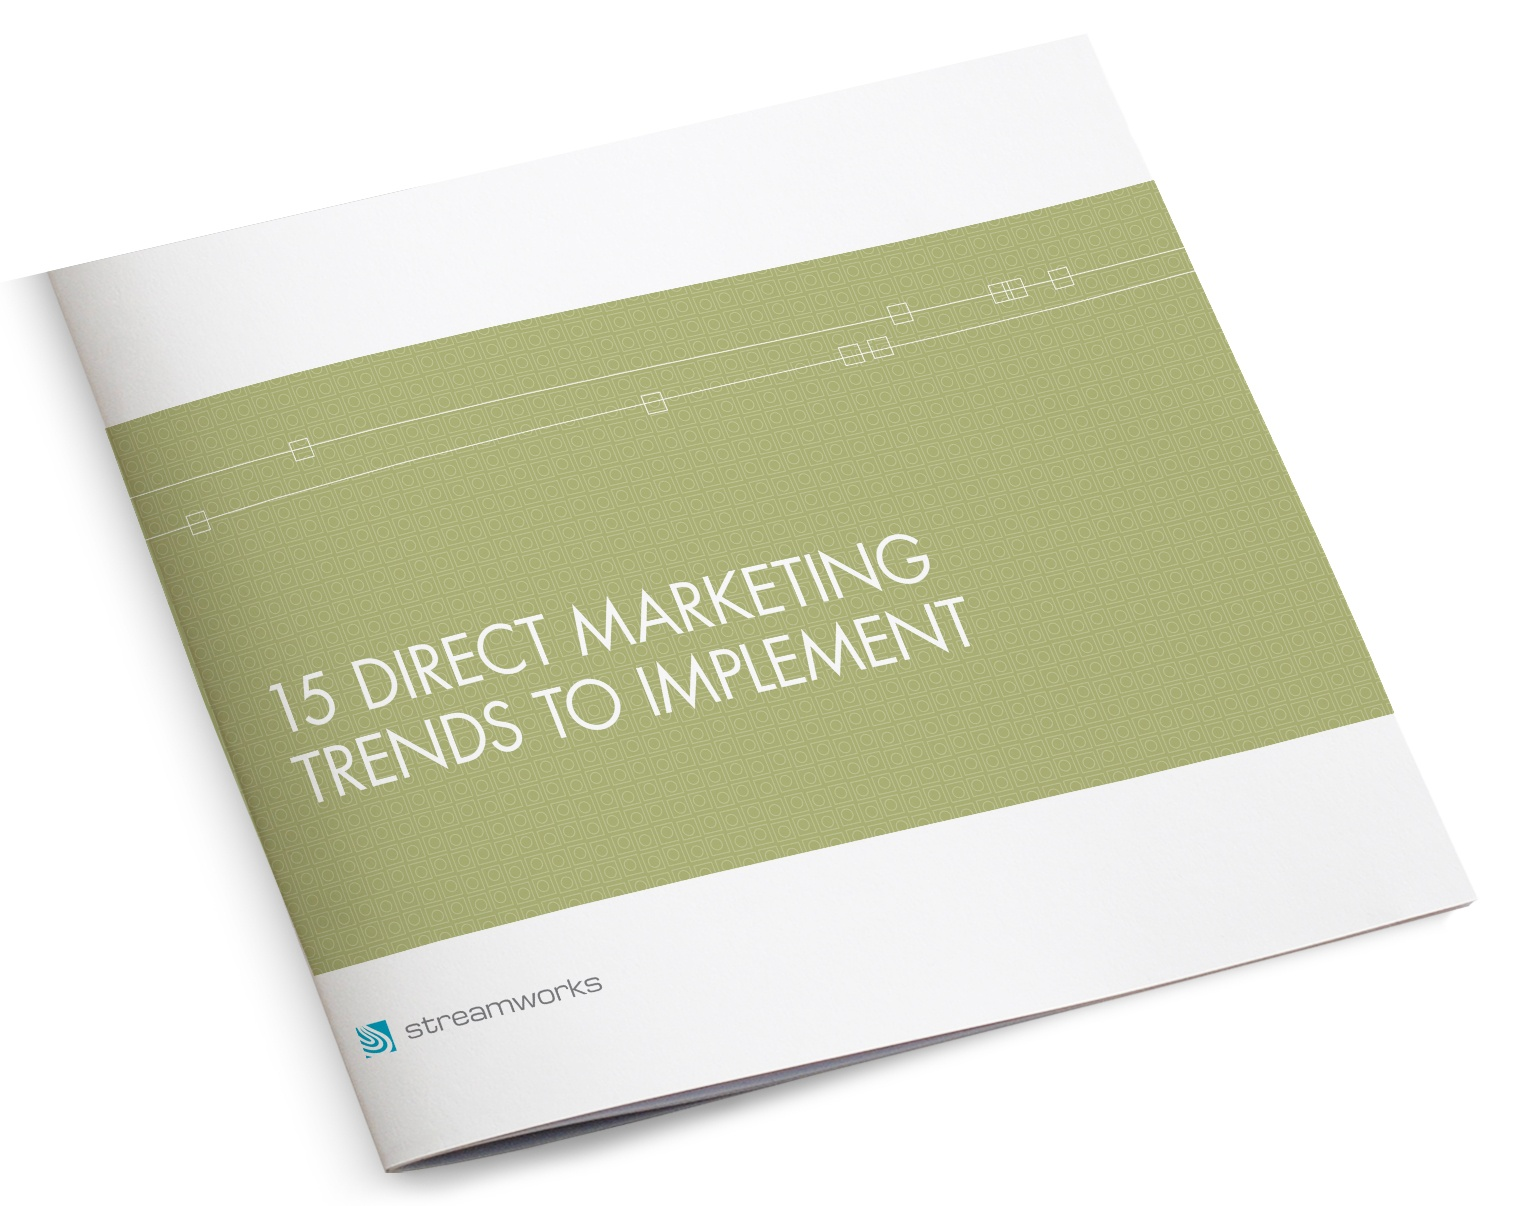 15 Direct Marketing Trends